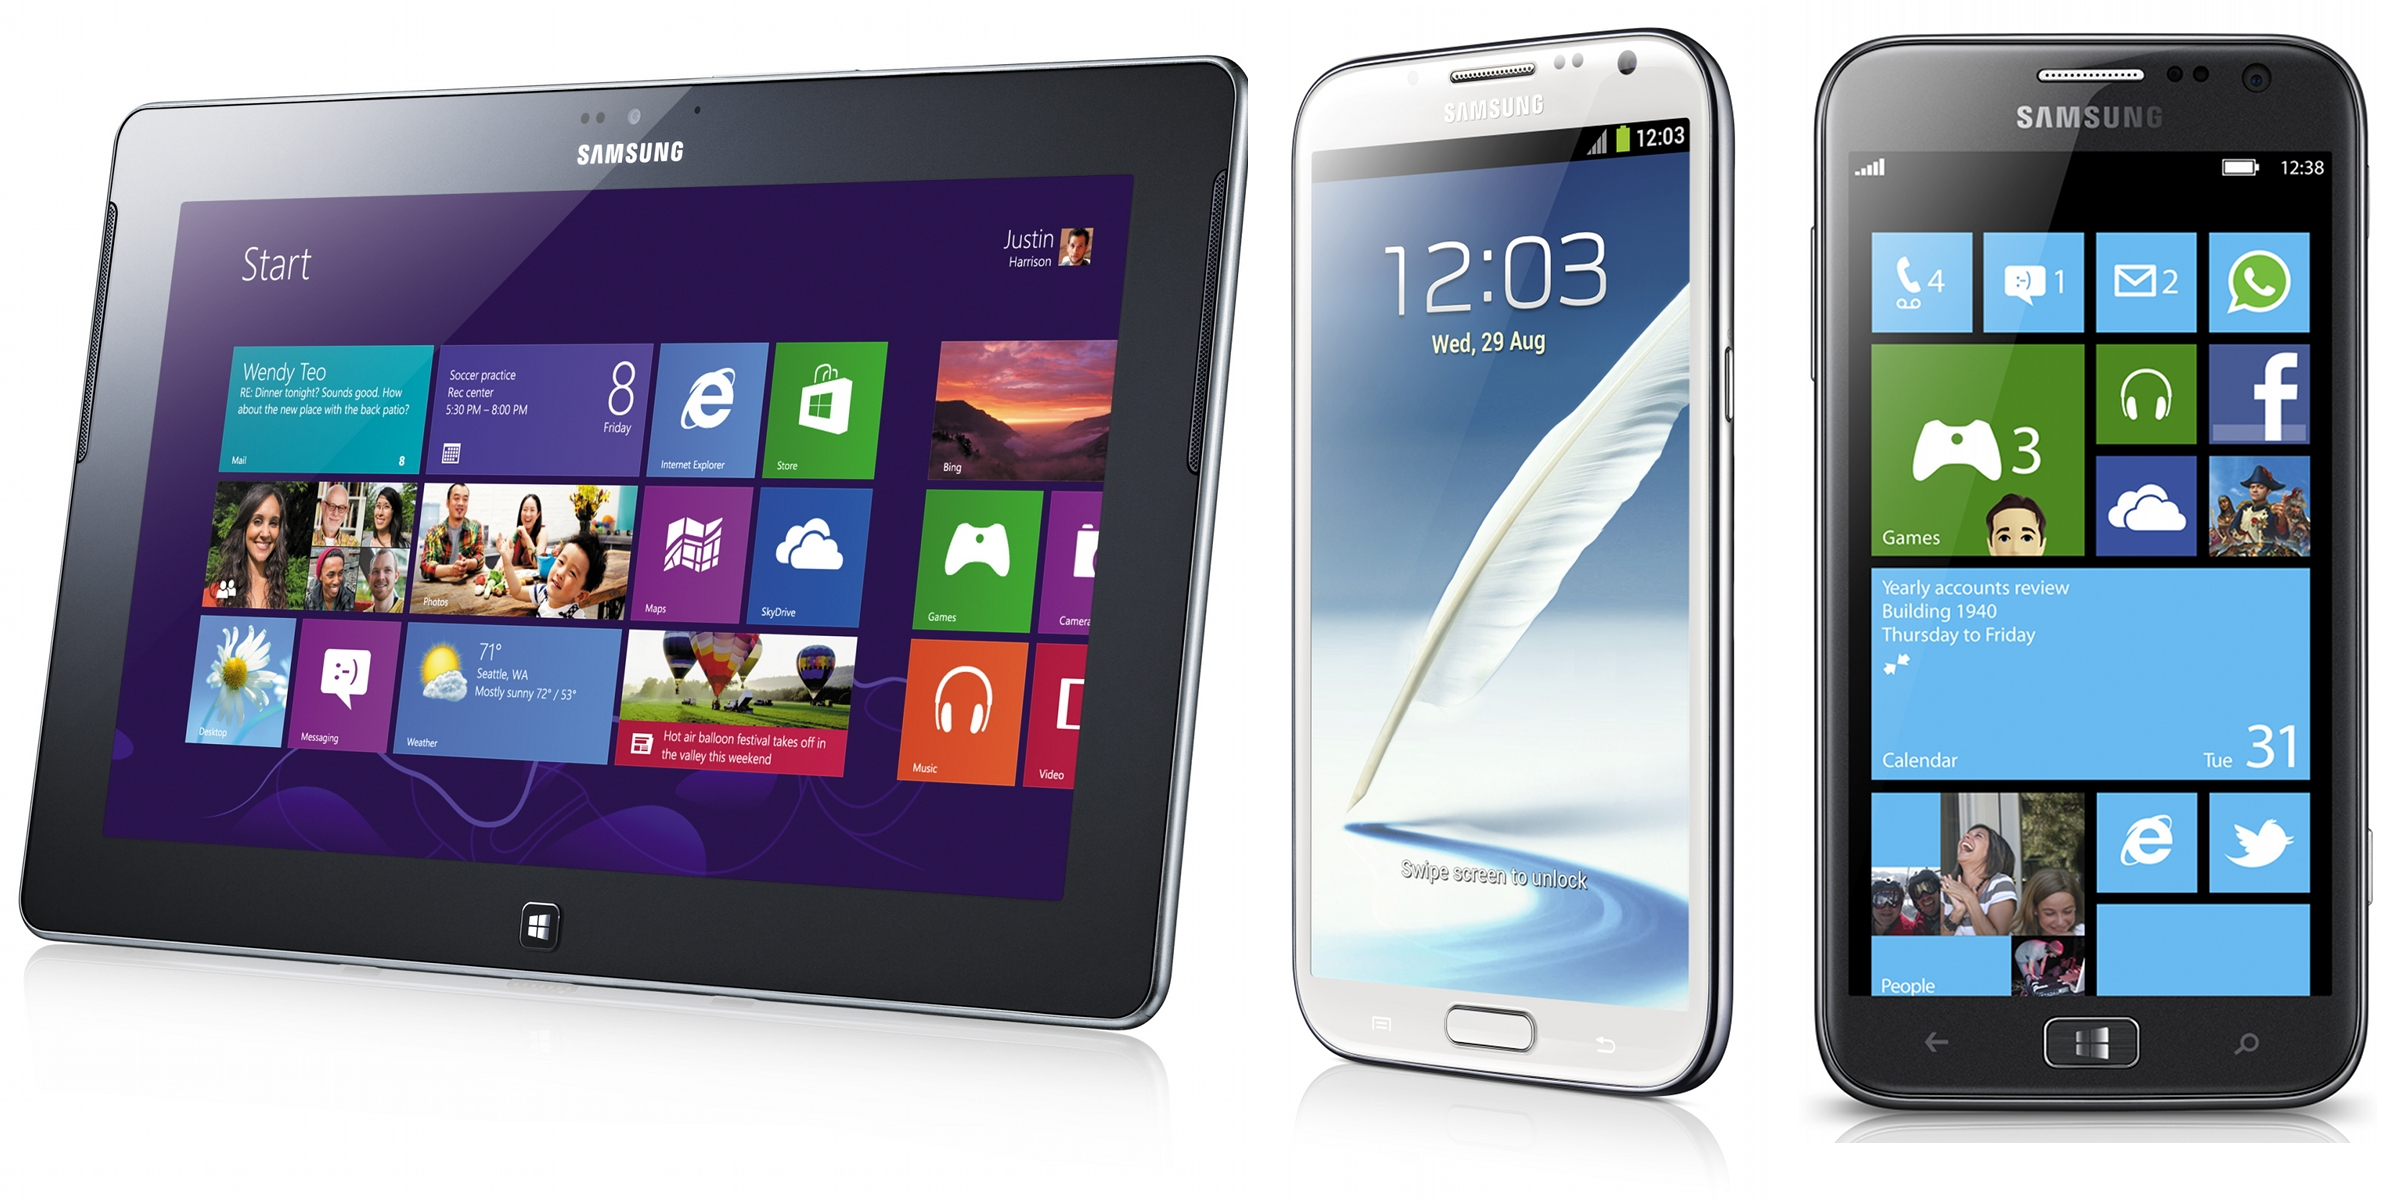 Samsung Ativ Line Outed At Ifa Windows 8 Rt And Phone Devices Revealed